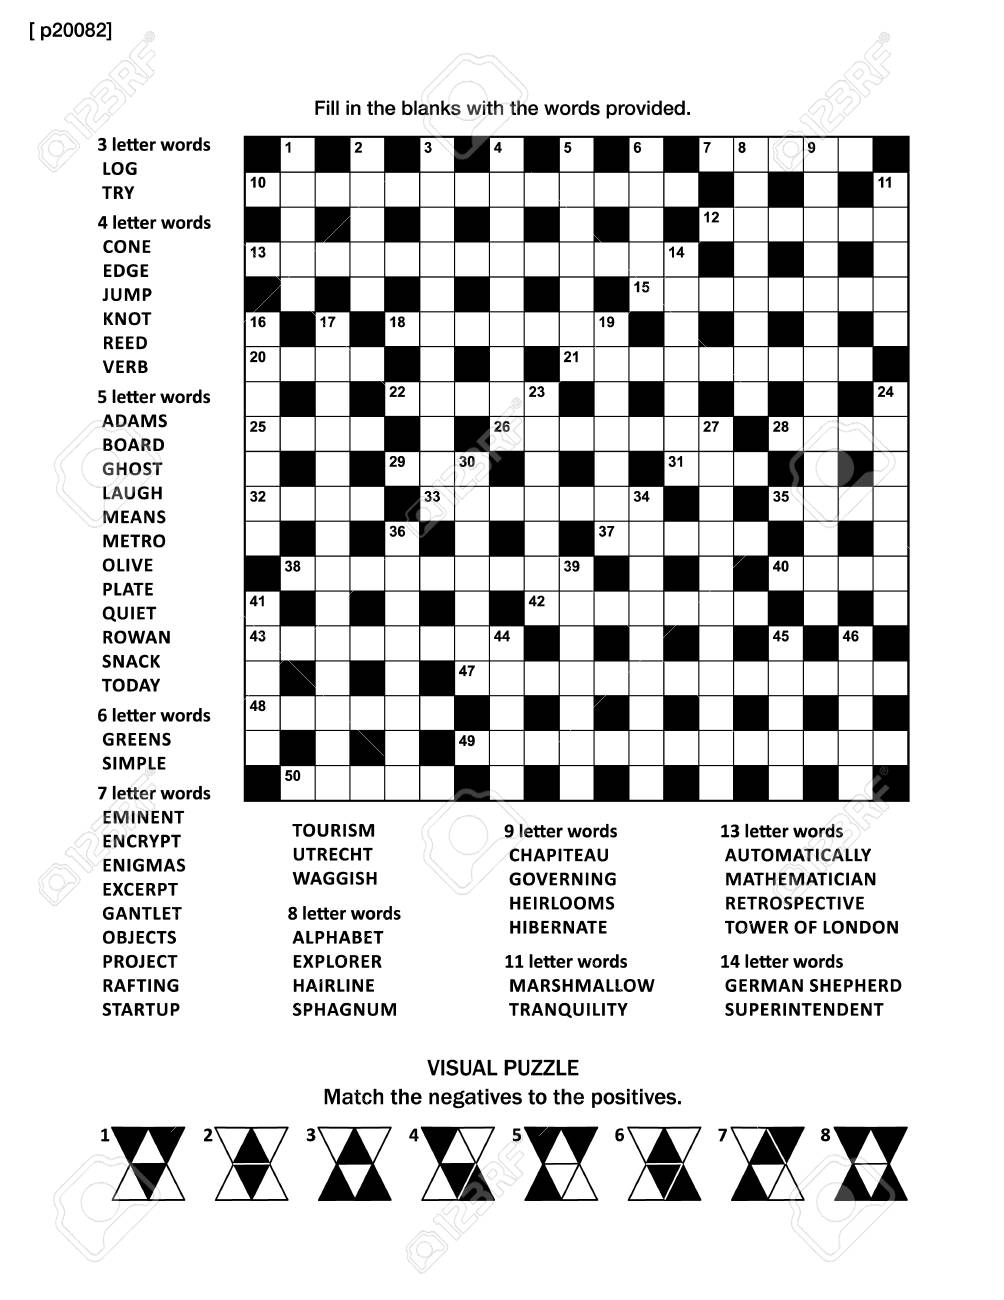 graphic regarding Printable Word Fill Ins Puzzles named Puzzle web site with 2 puzzles: 19x19 criss-cross (kriss-kross,..